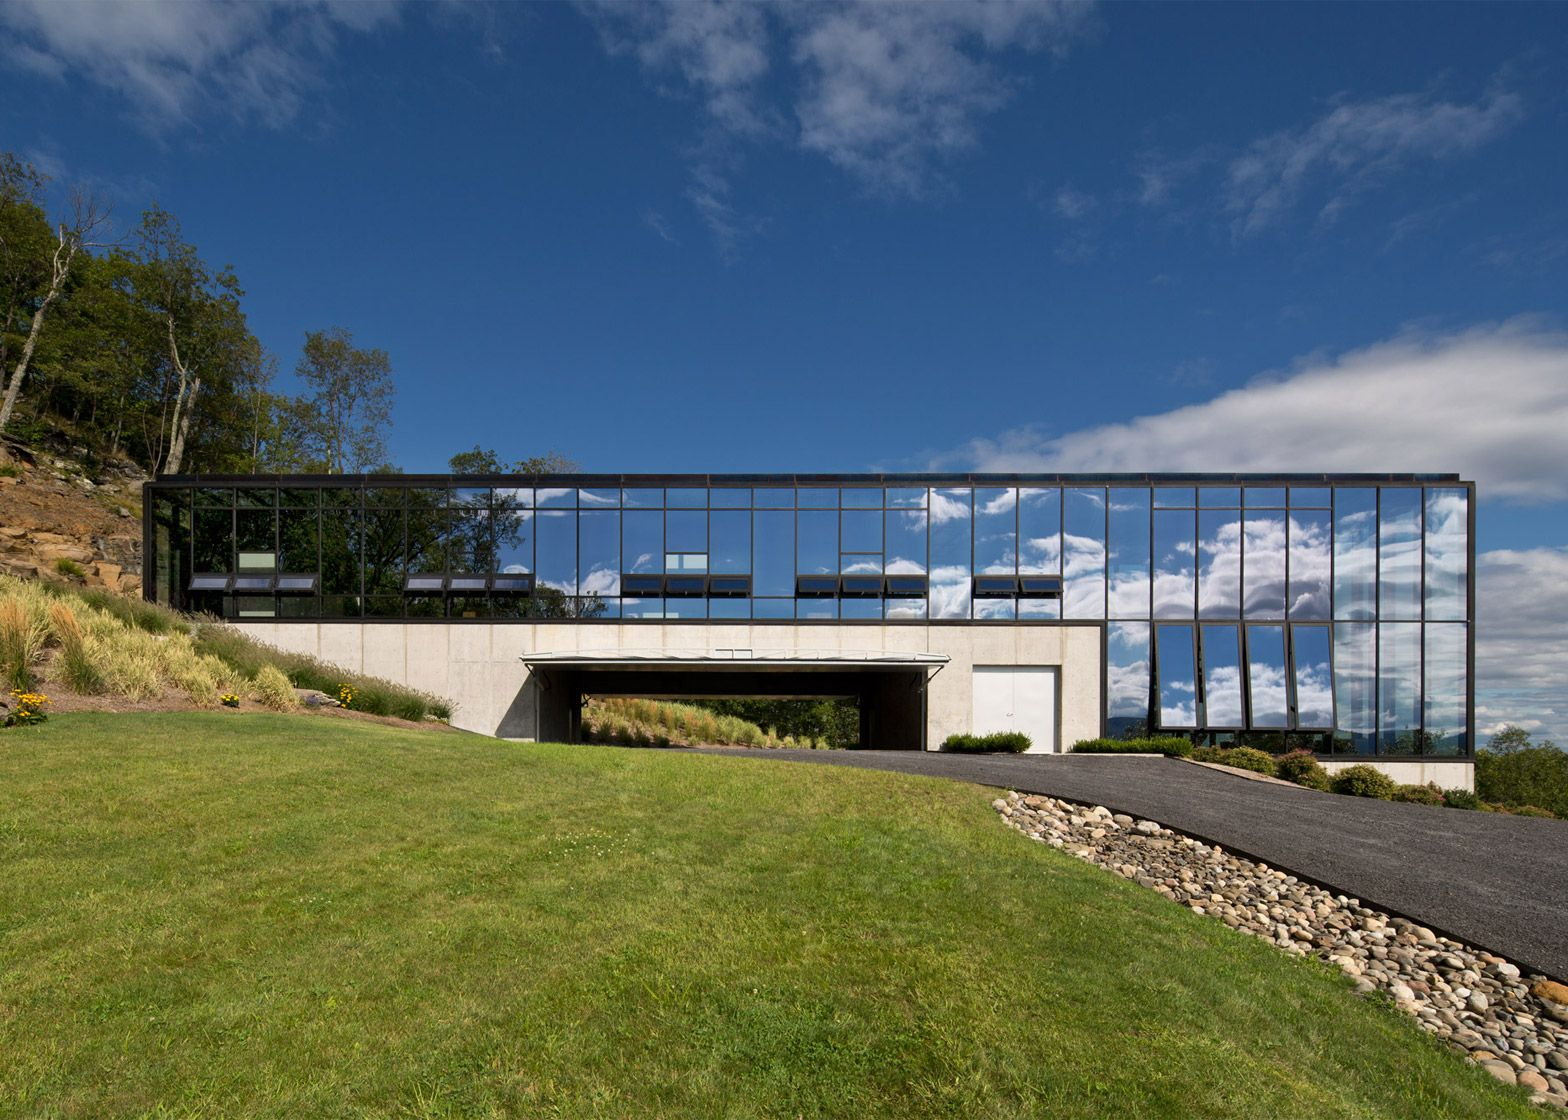 This house in upstate New York features glass walls that reflect the scenic landscape.